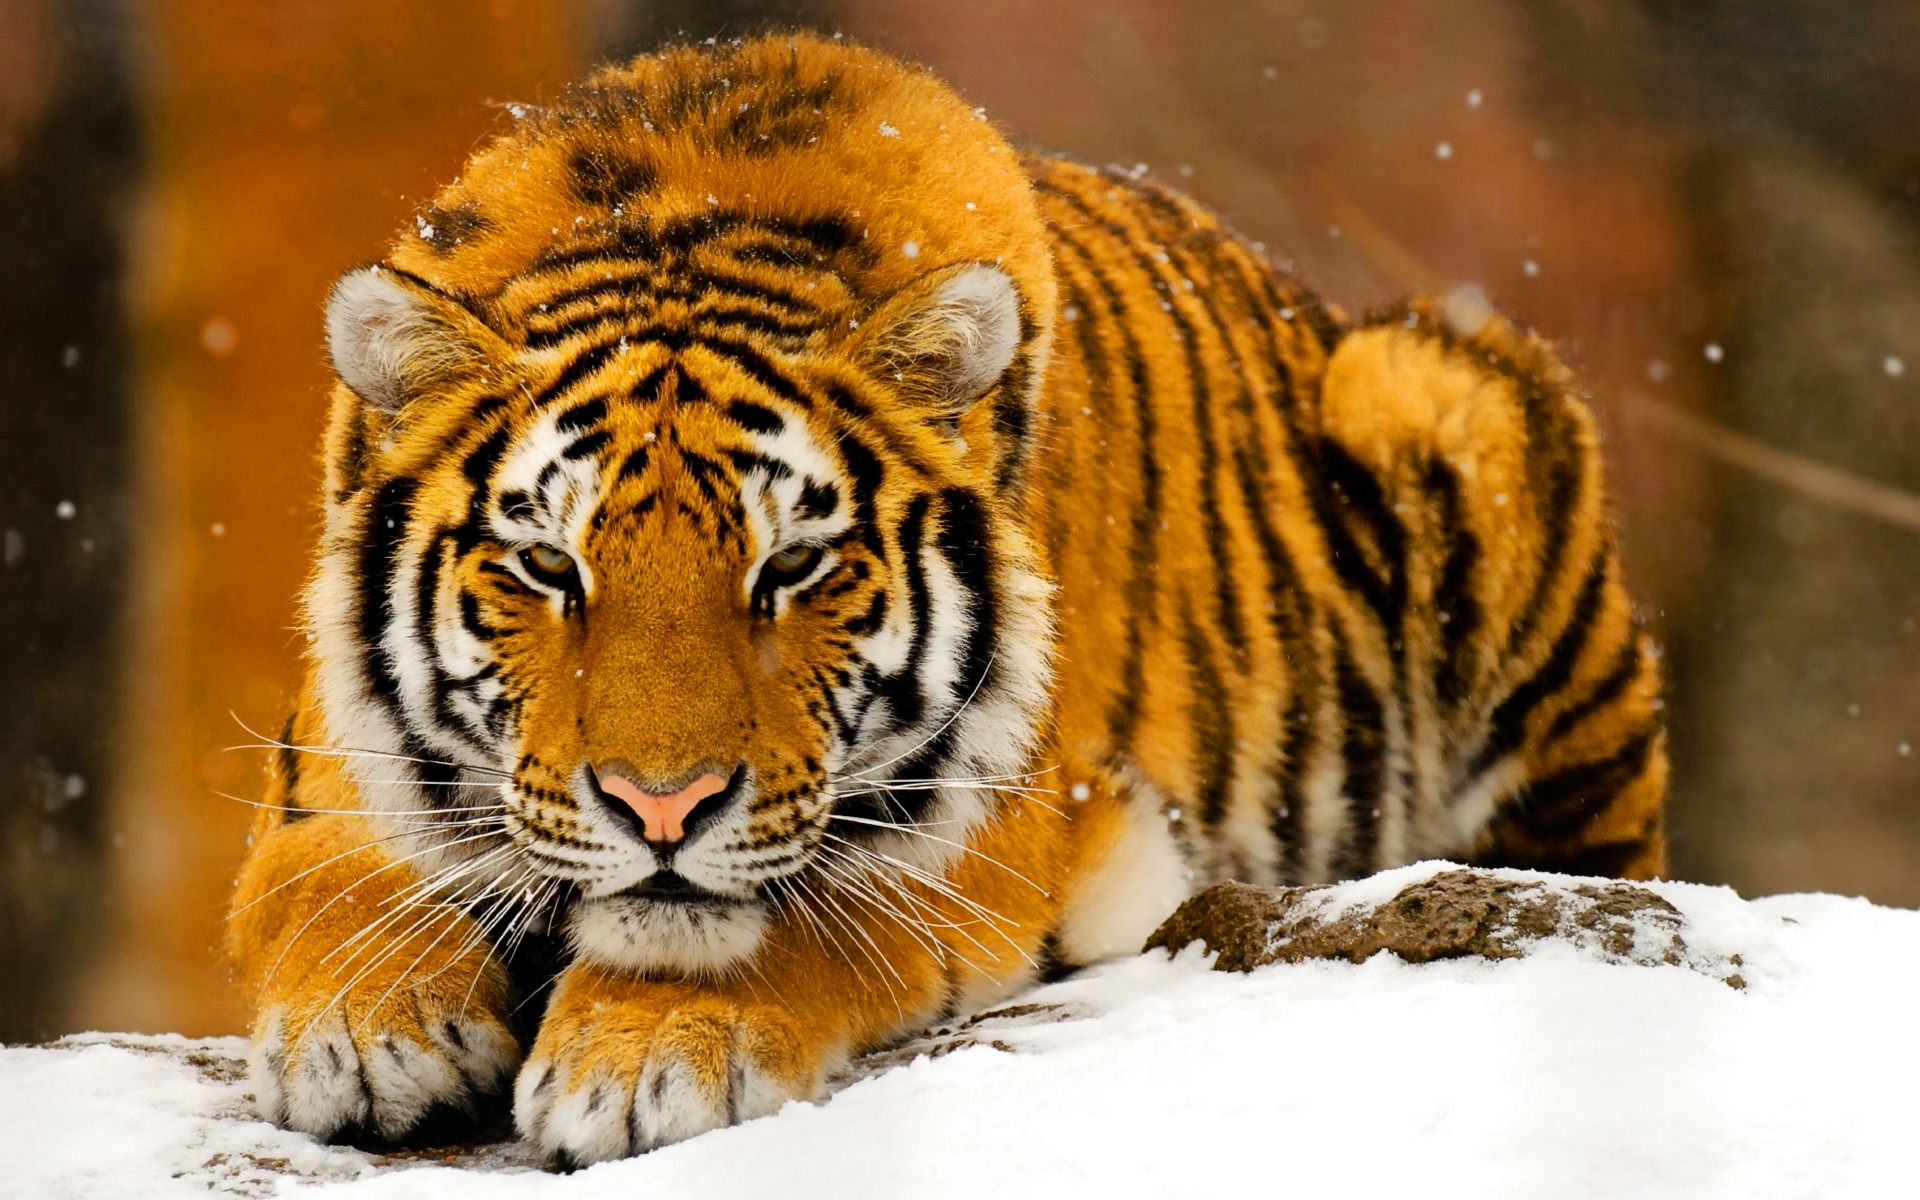 75 Hd Animals Ipad Backgrounds: Tiger Wallpaper For IPad